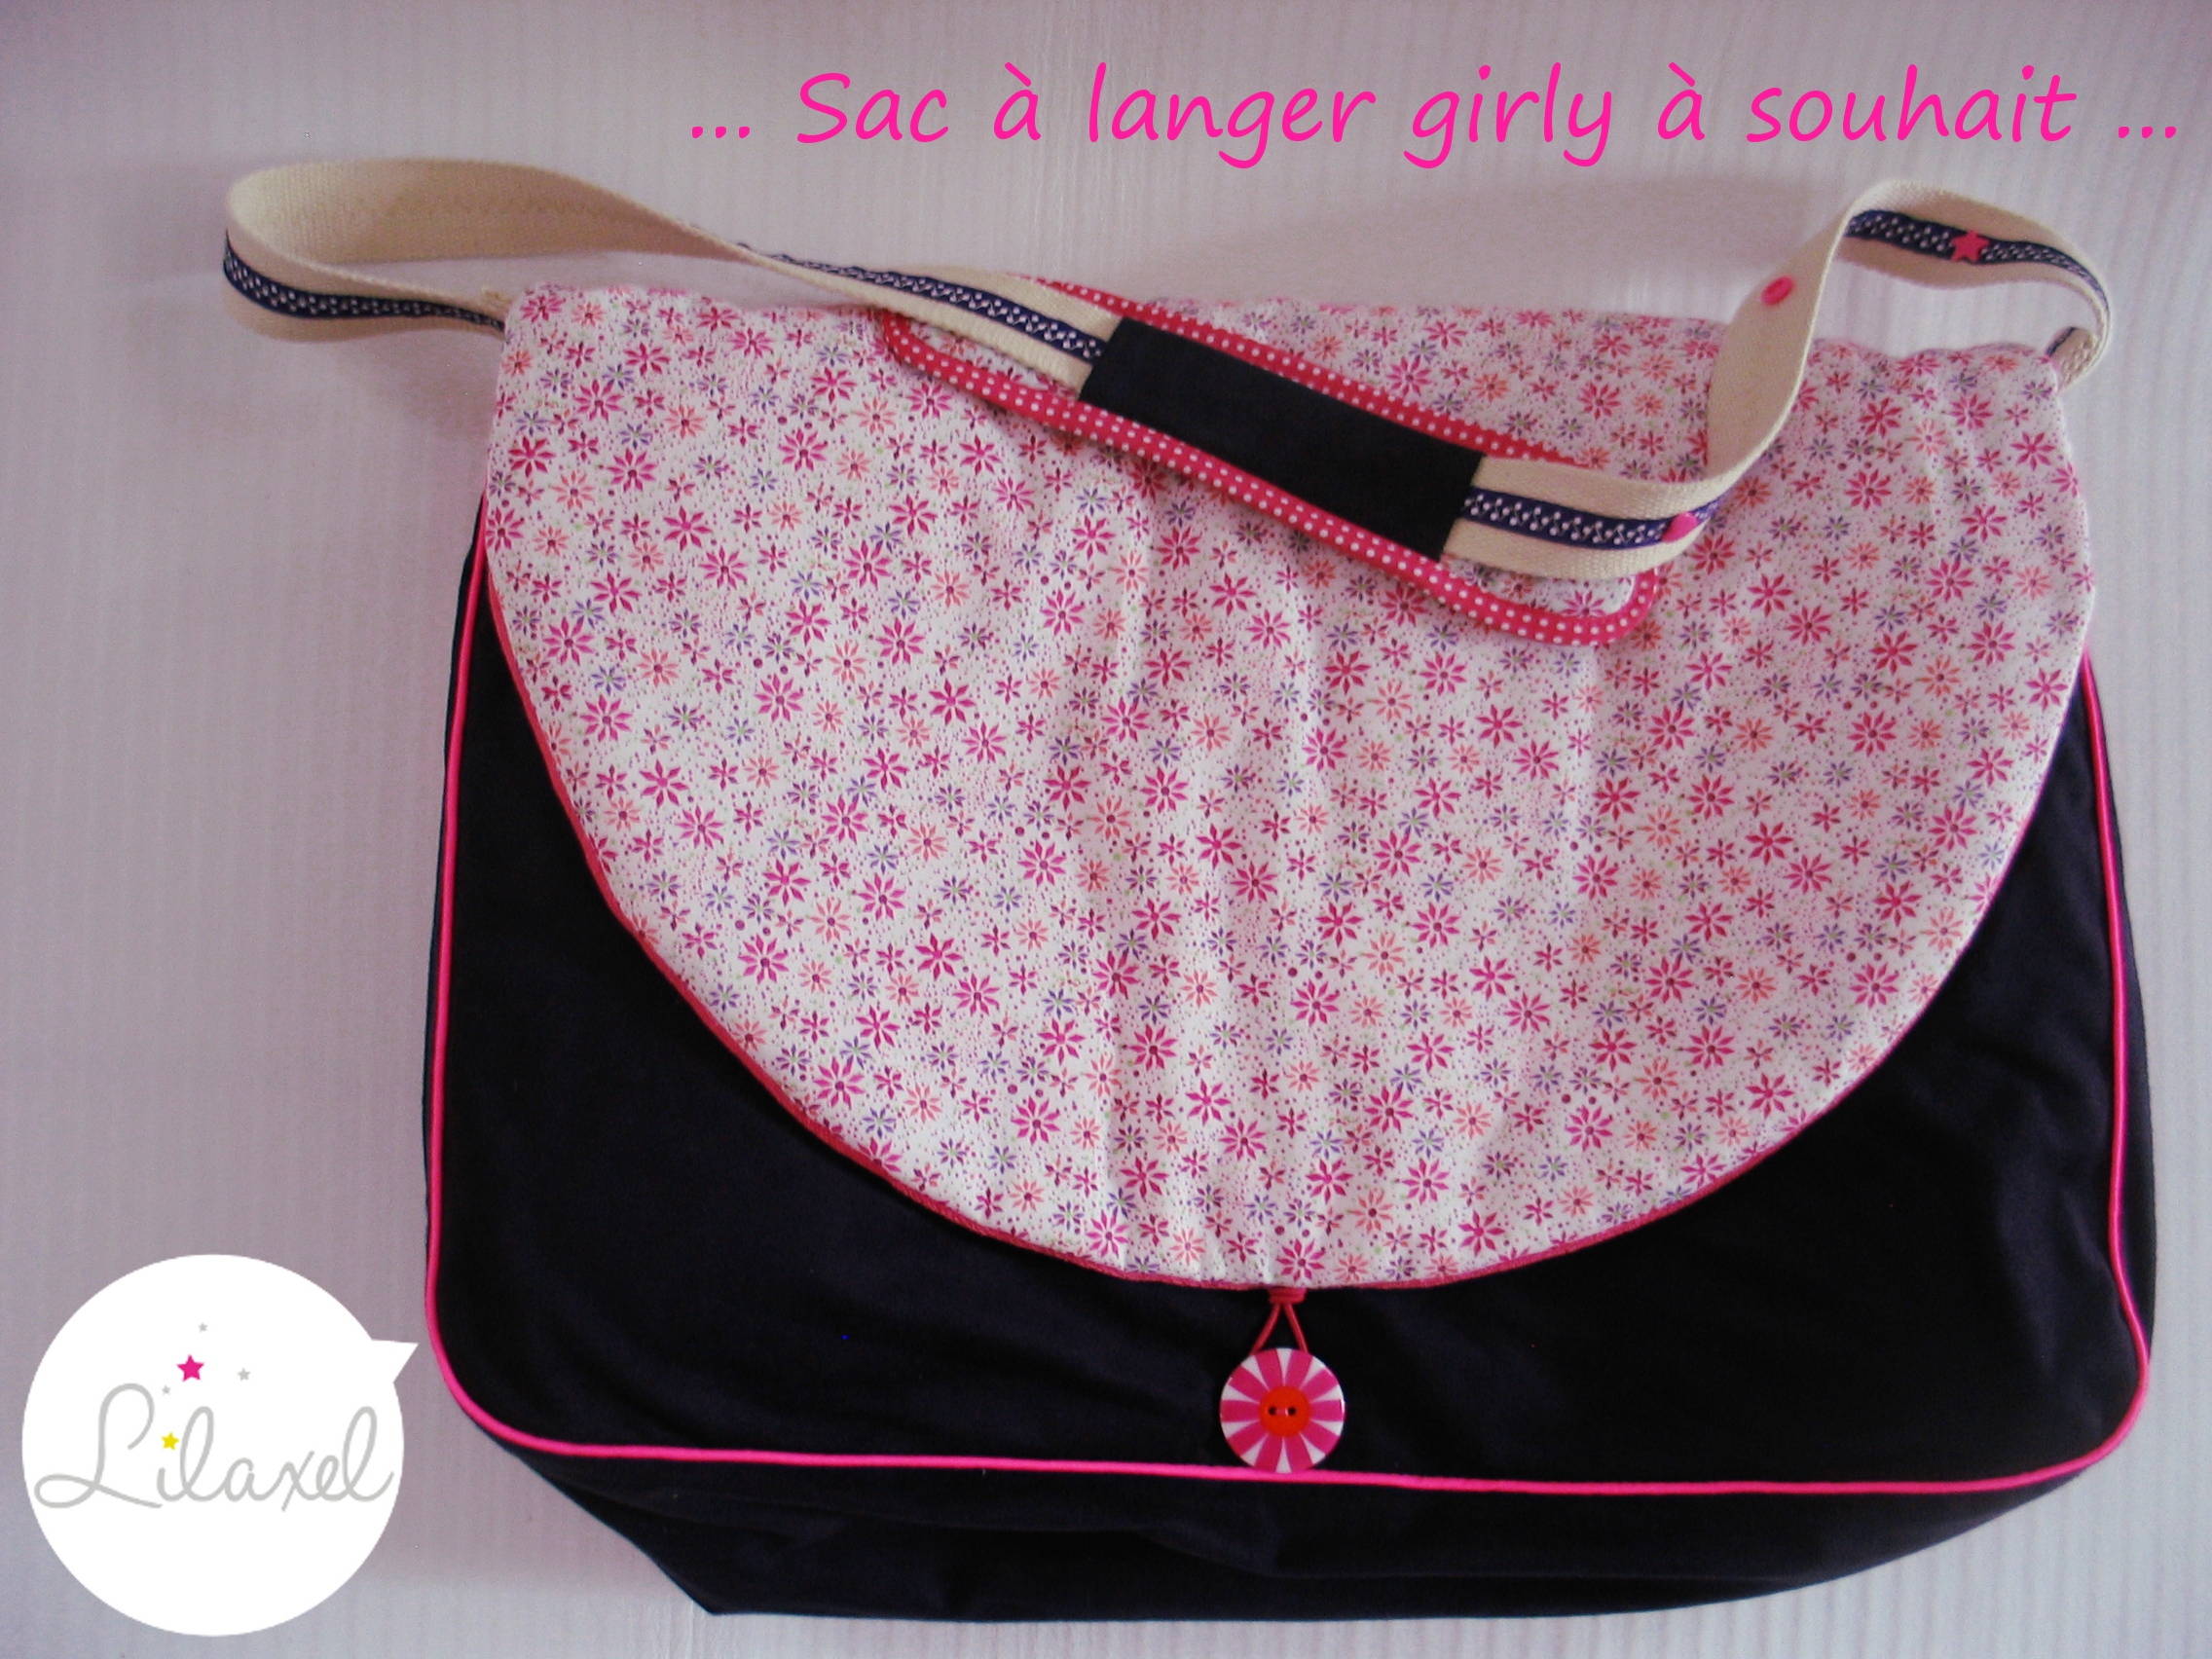 Sac à langer girly